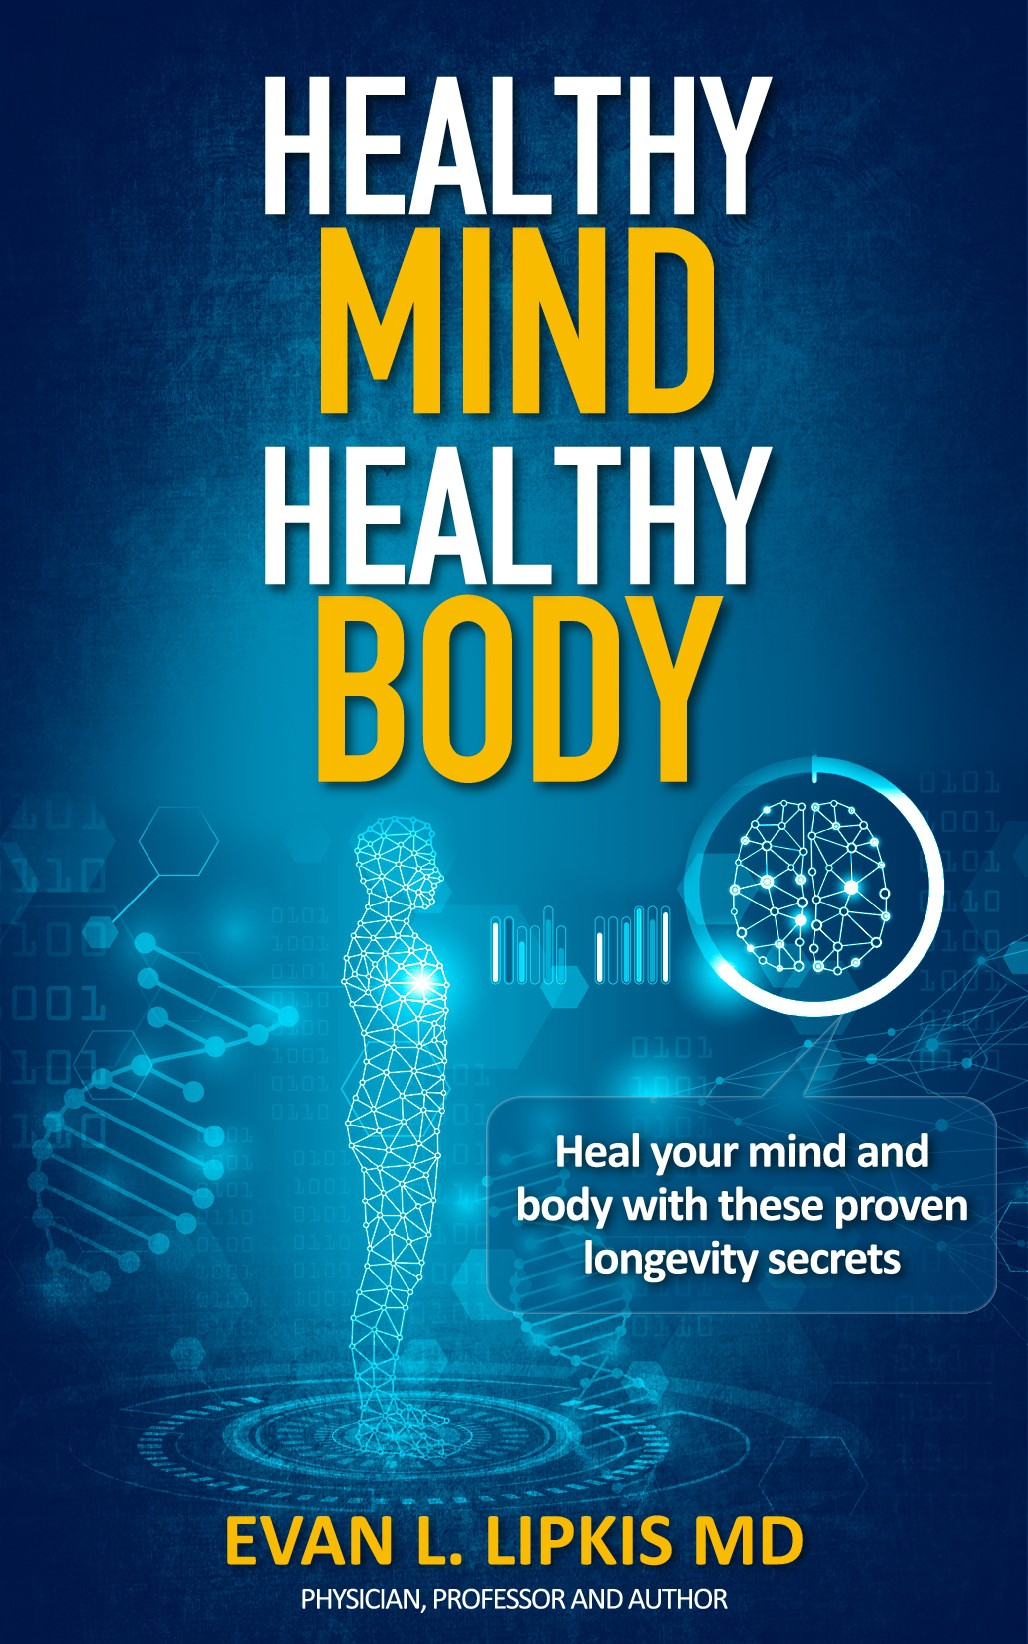 Best selling cover for this doc's book Healthy Mind, Healthy Body